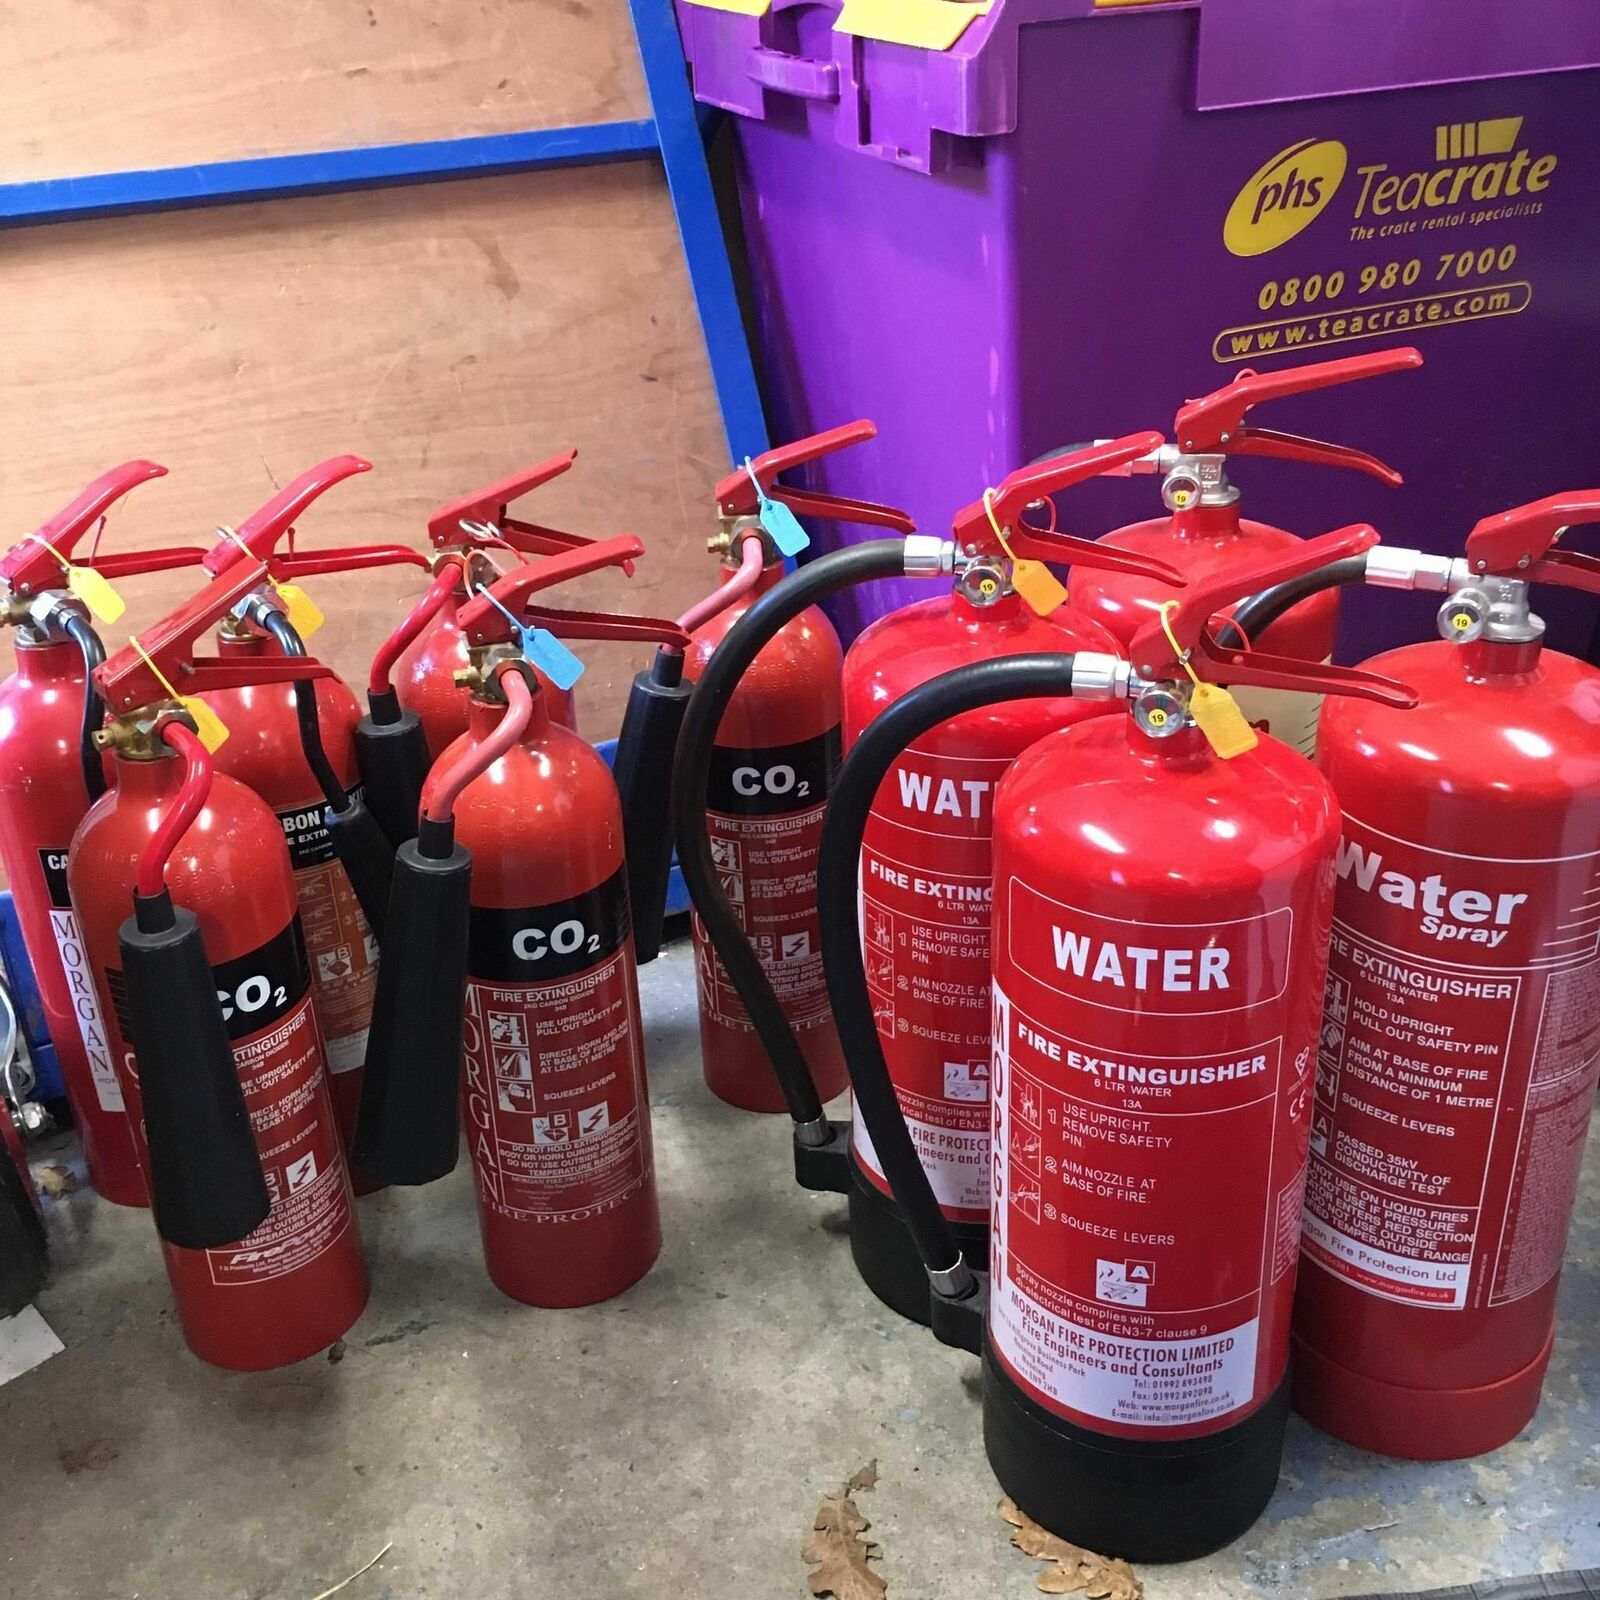 OUT OF SERVICE Fire Extinguishers WATER CO2